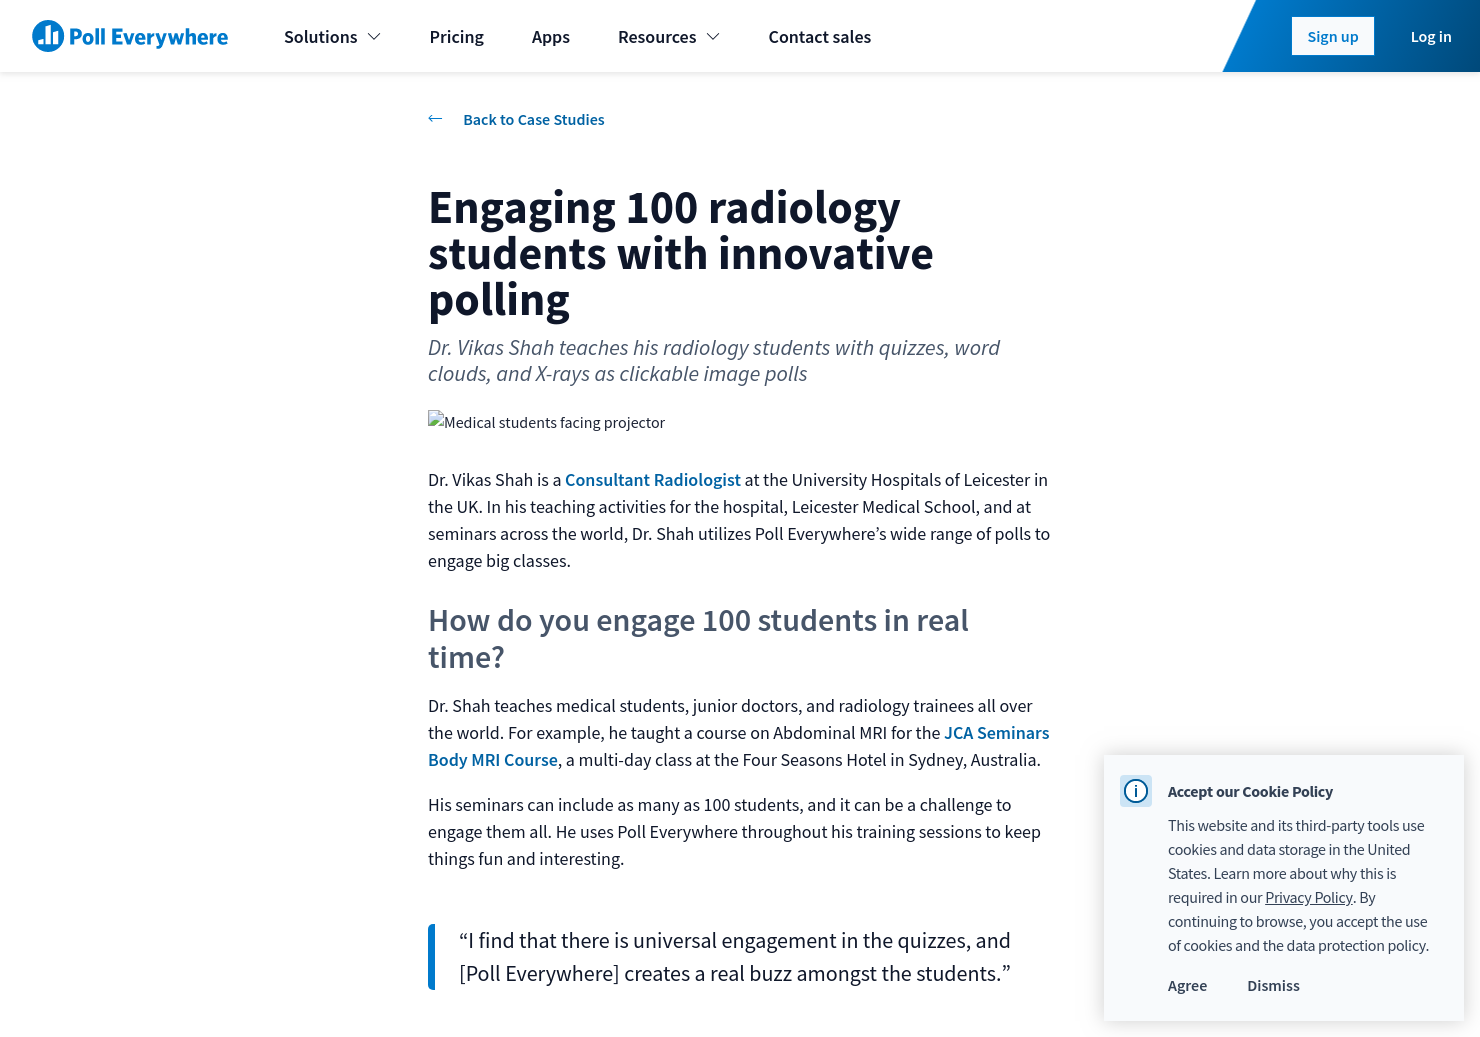 Engaging 100 radiology students with innovative polling